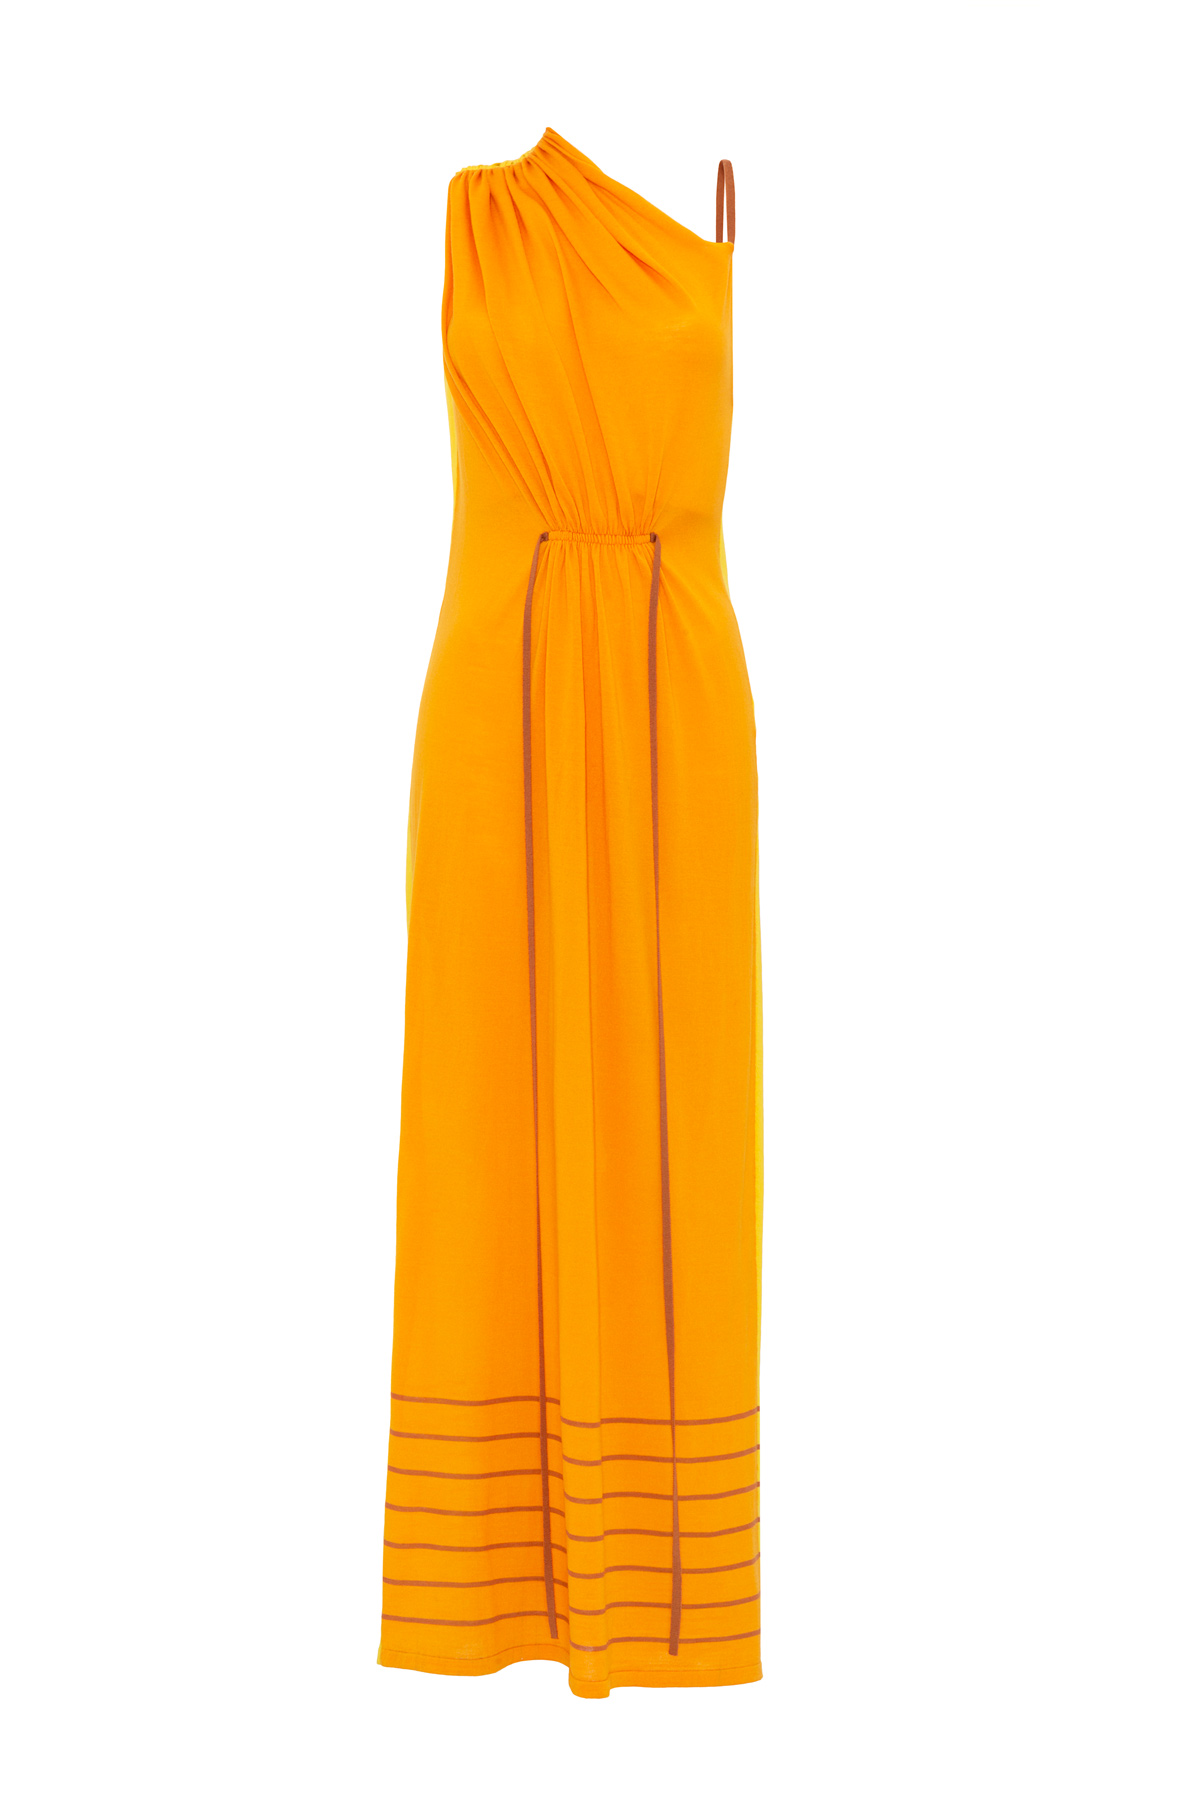 LOEWE Drawstring Knit Dress Orange front